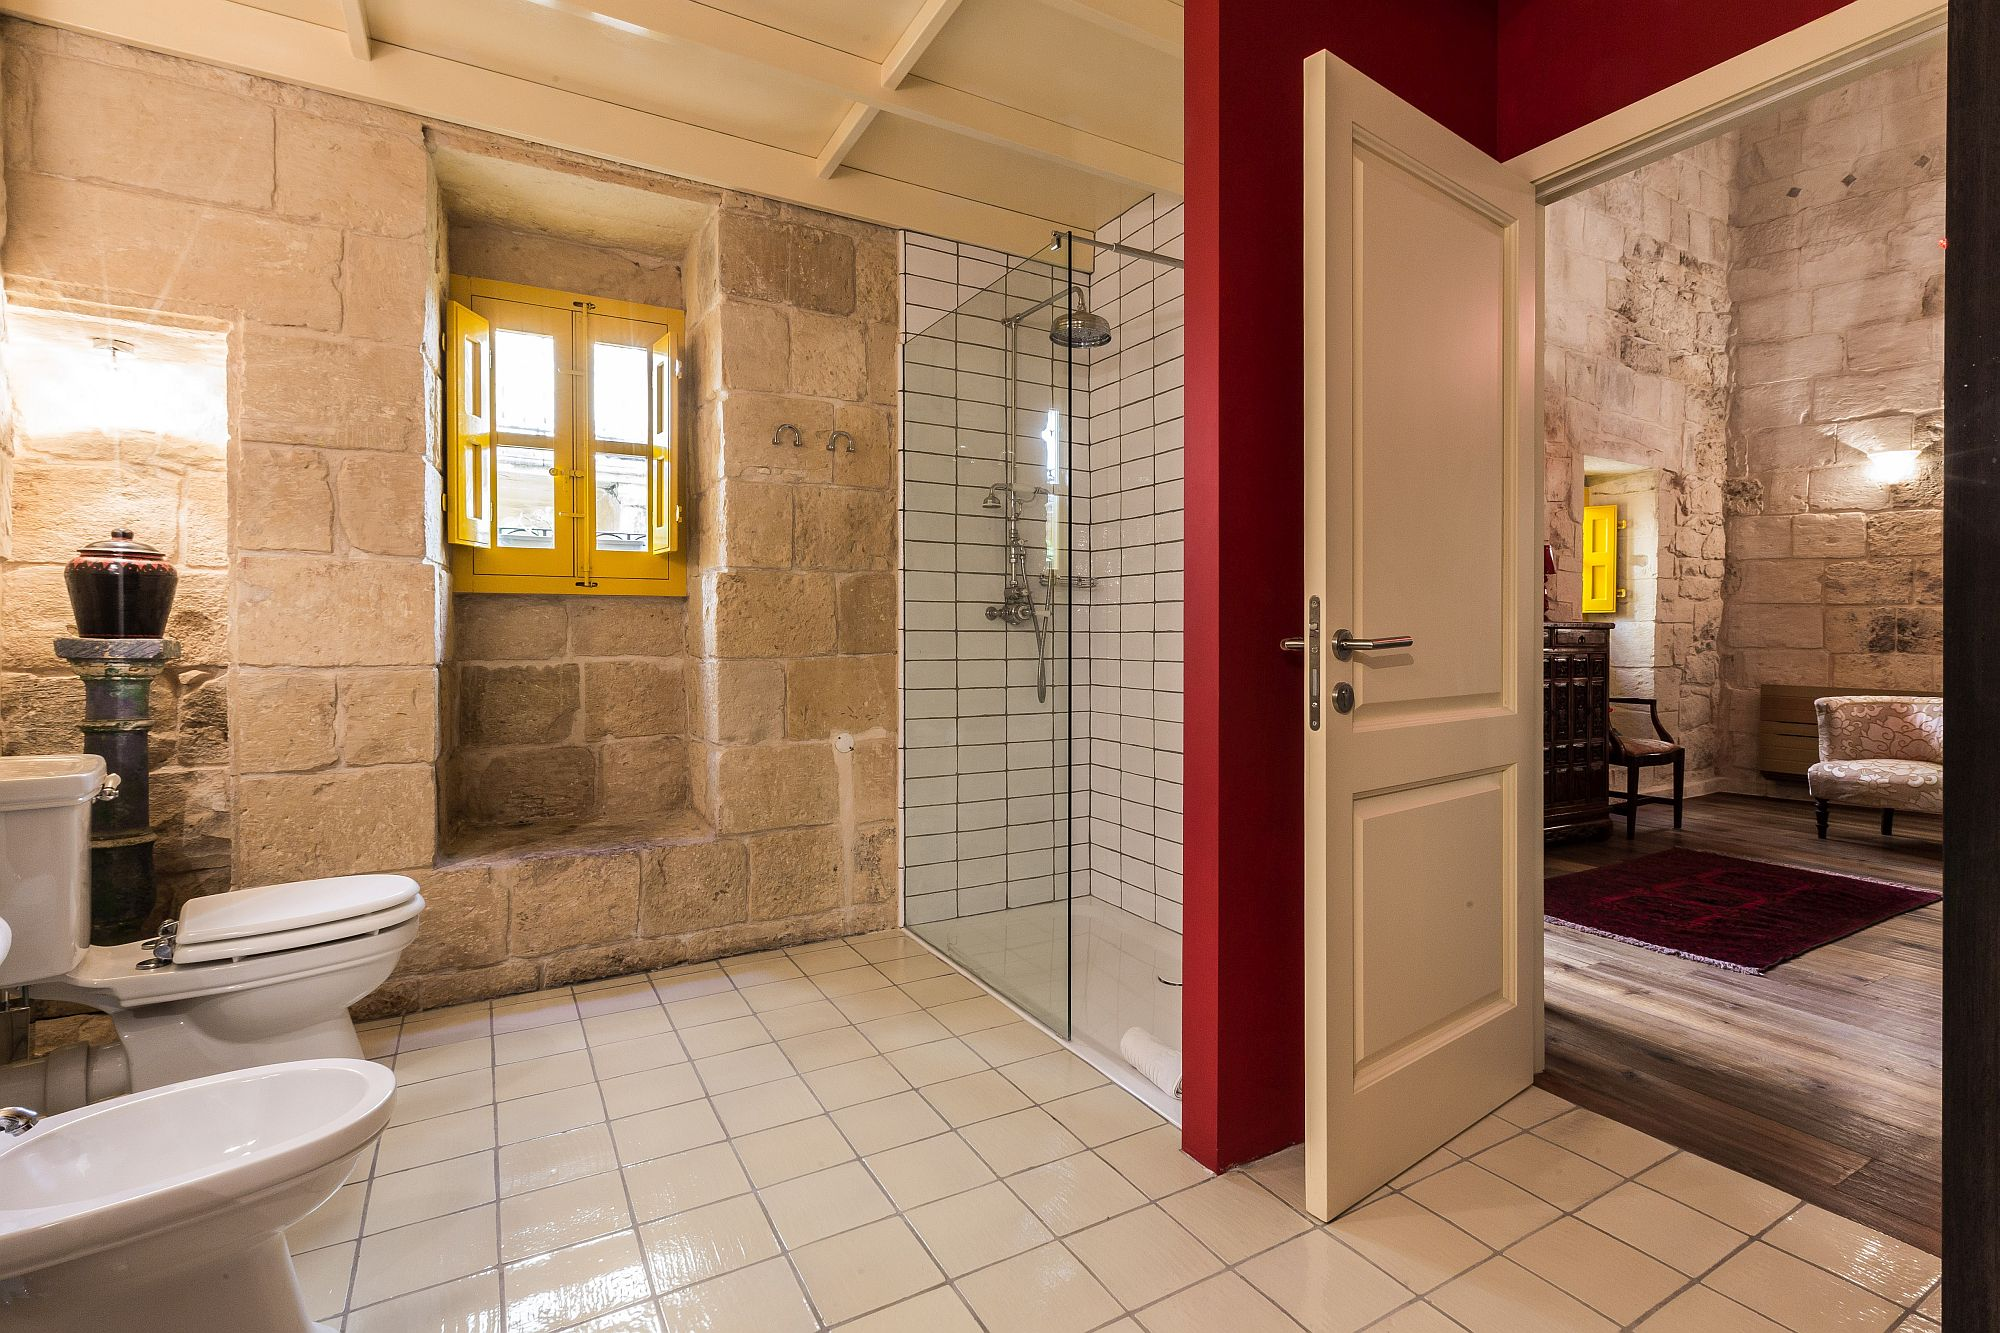 Bathroom at the first suite of Locanda La Gelsomina with stone walls, white tiles and pops of yellow and red